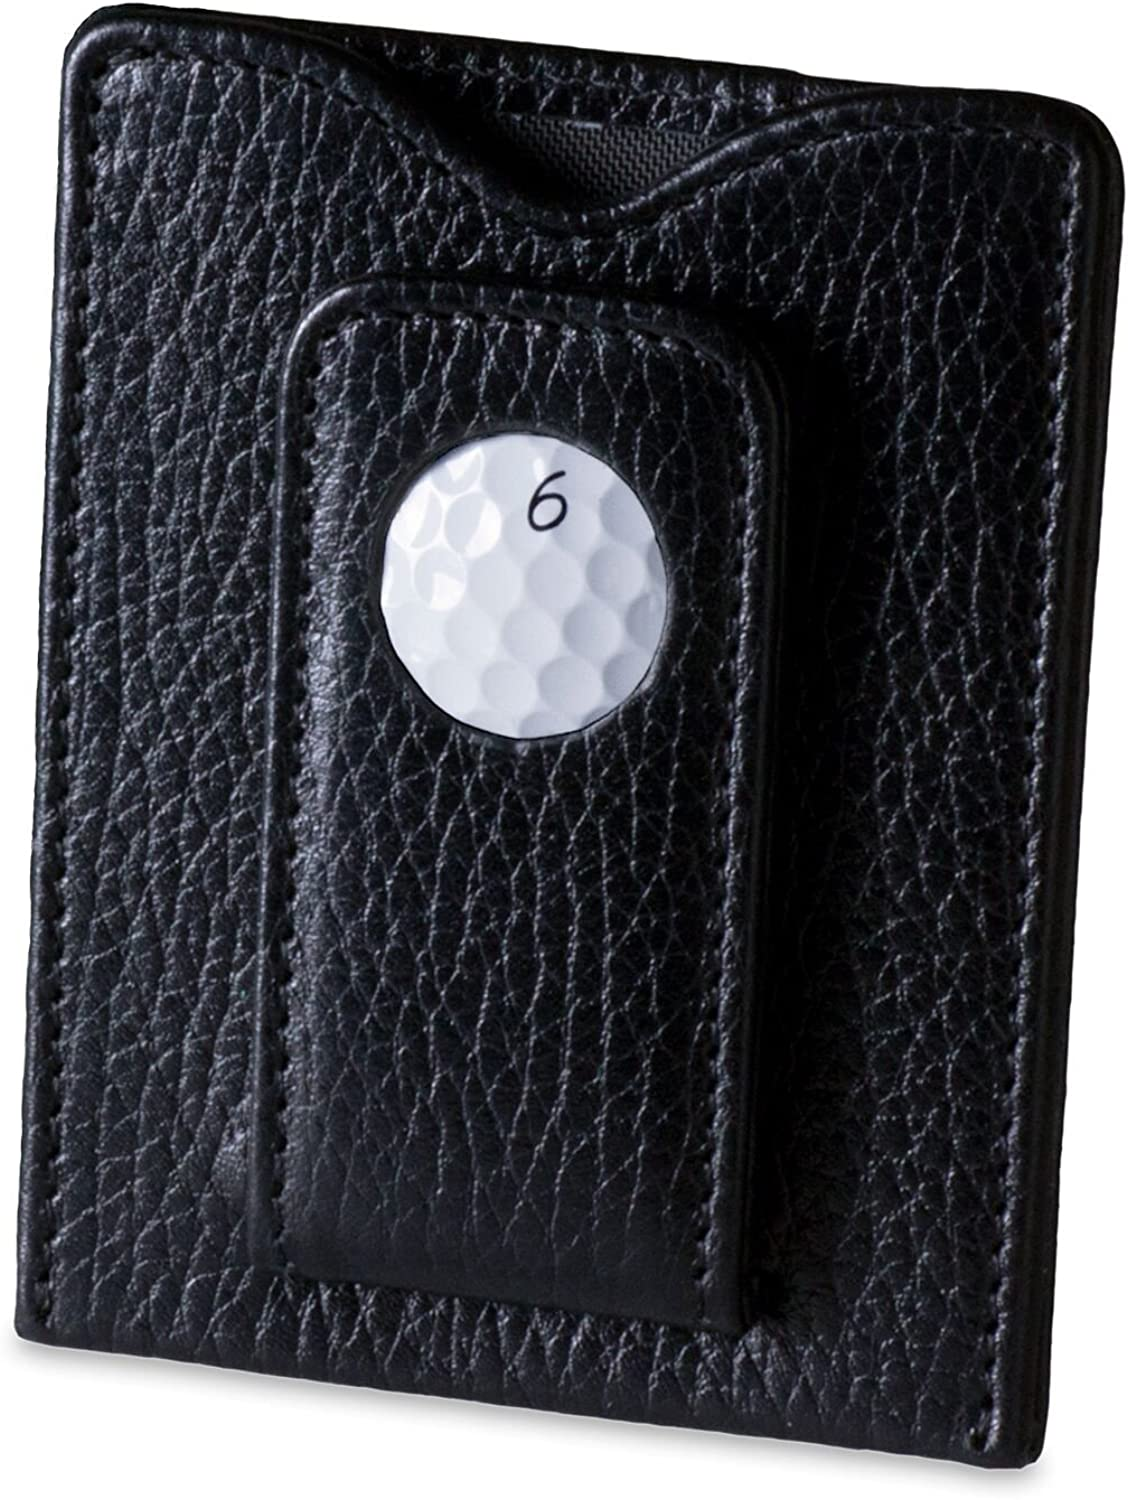 Tokens and Ranking TOP8 Icons TPC Sawgrass Leather Clip Wallet Be super welcome Money Magnetic